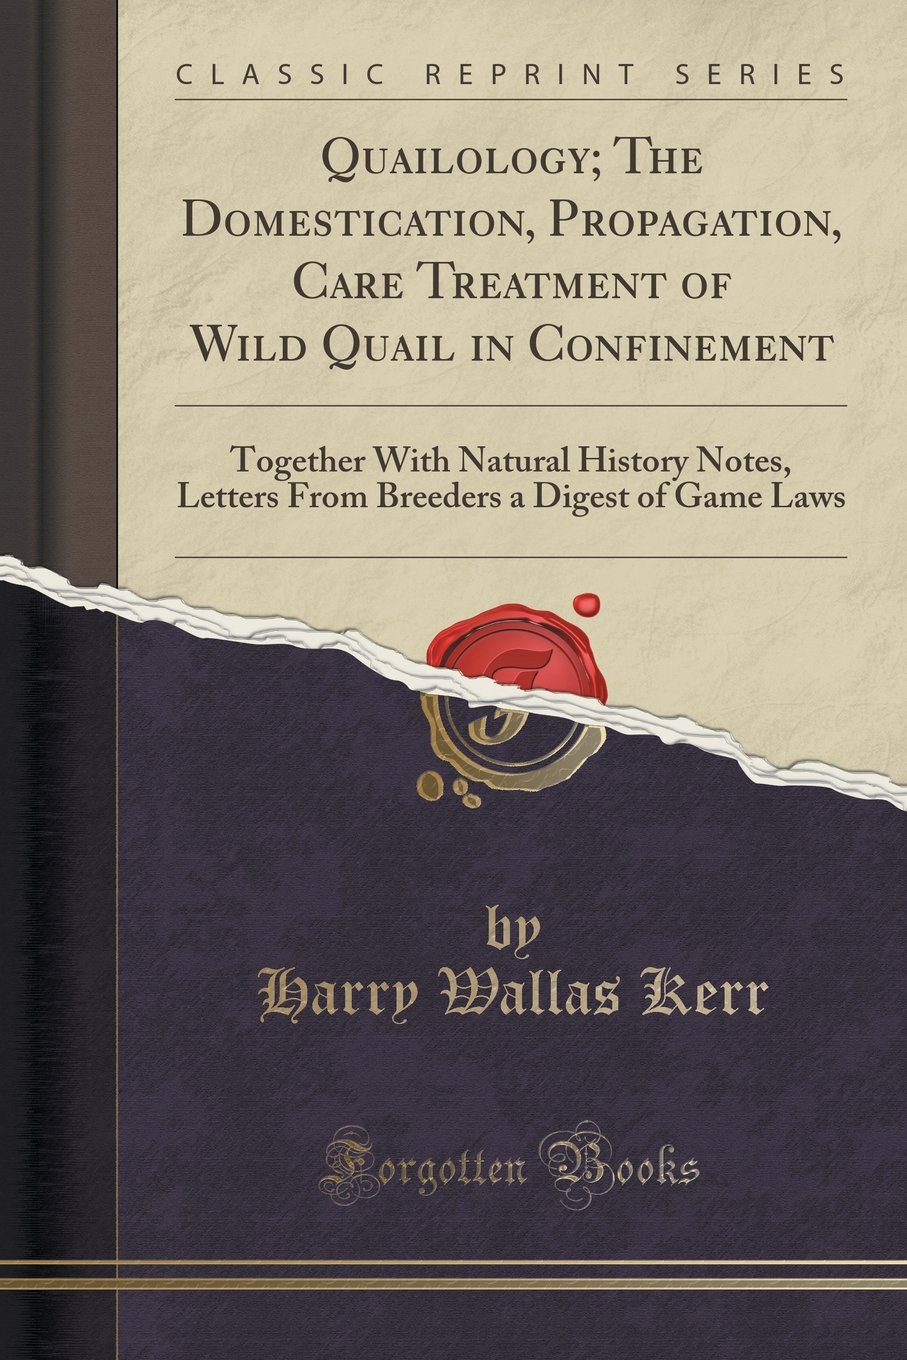 Quailology; The Domestication, Propagation, Care Treatment of Wild Quail in Confinement: Together With Natural History Notes, Letters From Breeders a Digest of Game Laws (Classic Reprint) pdf